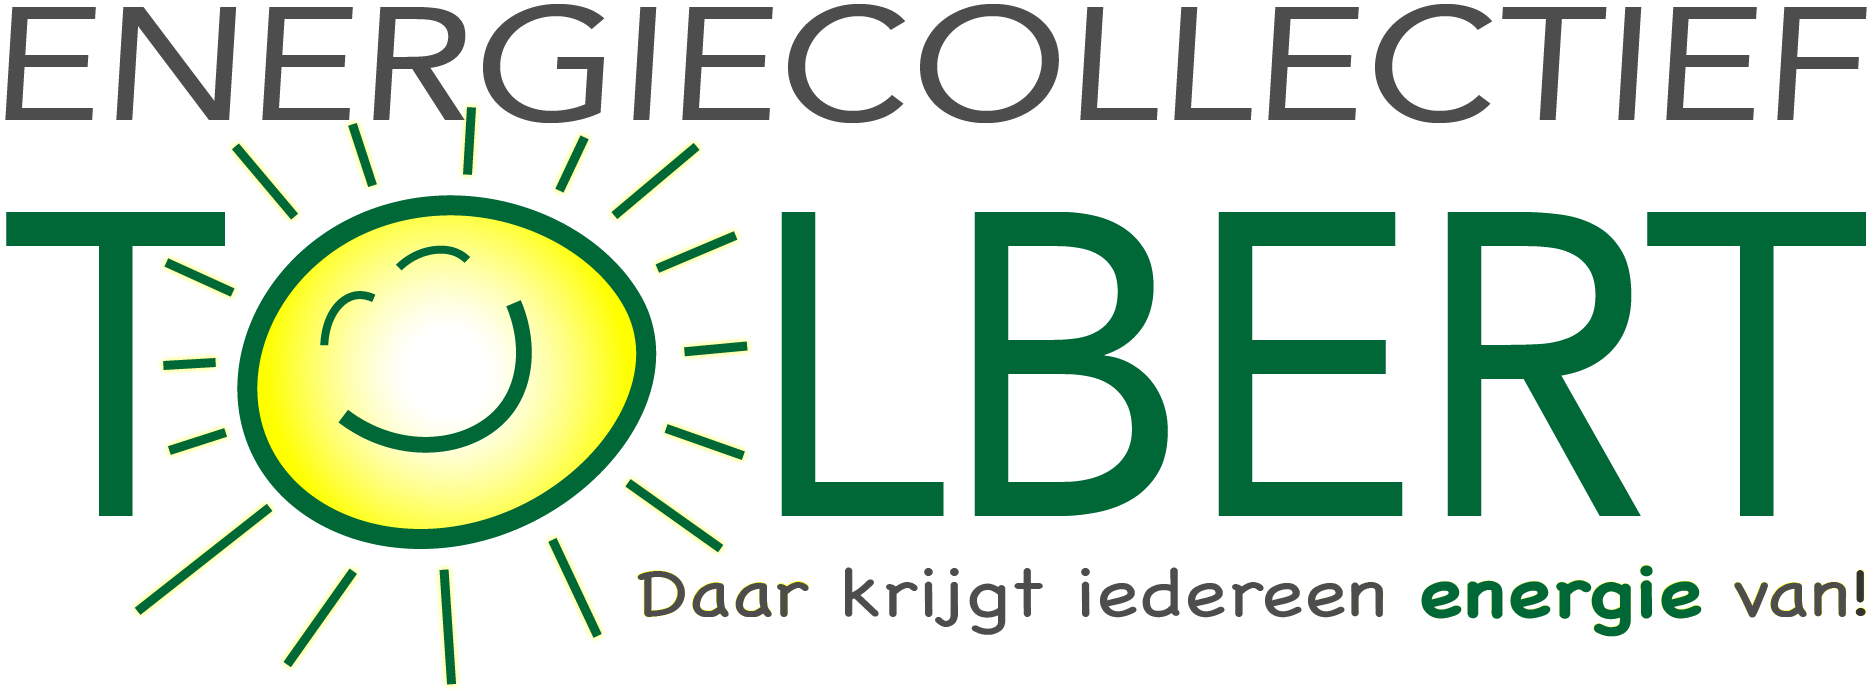 Energie Collectief Tolbert